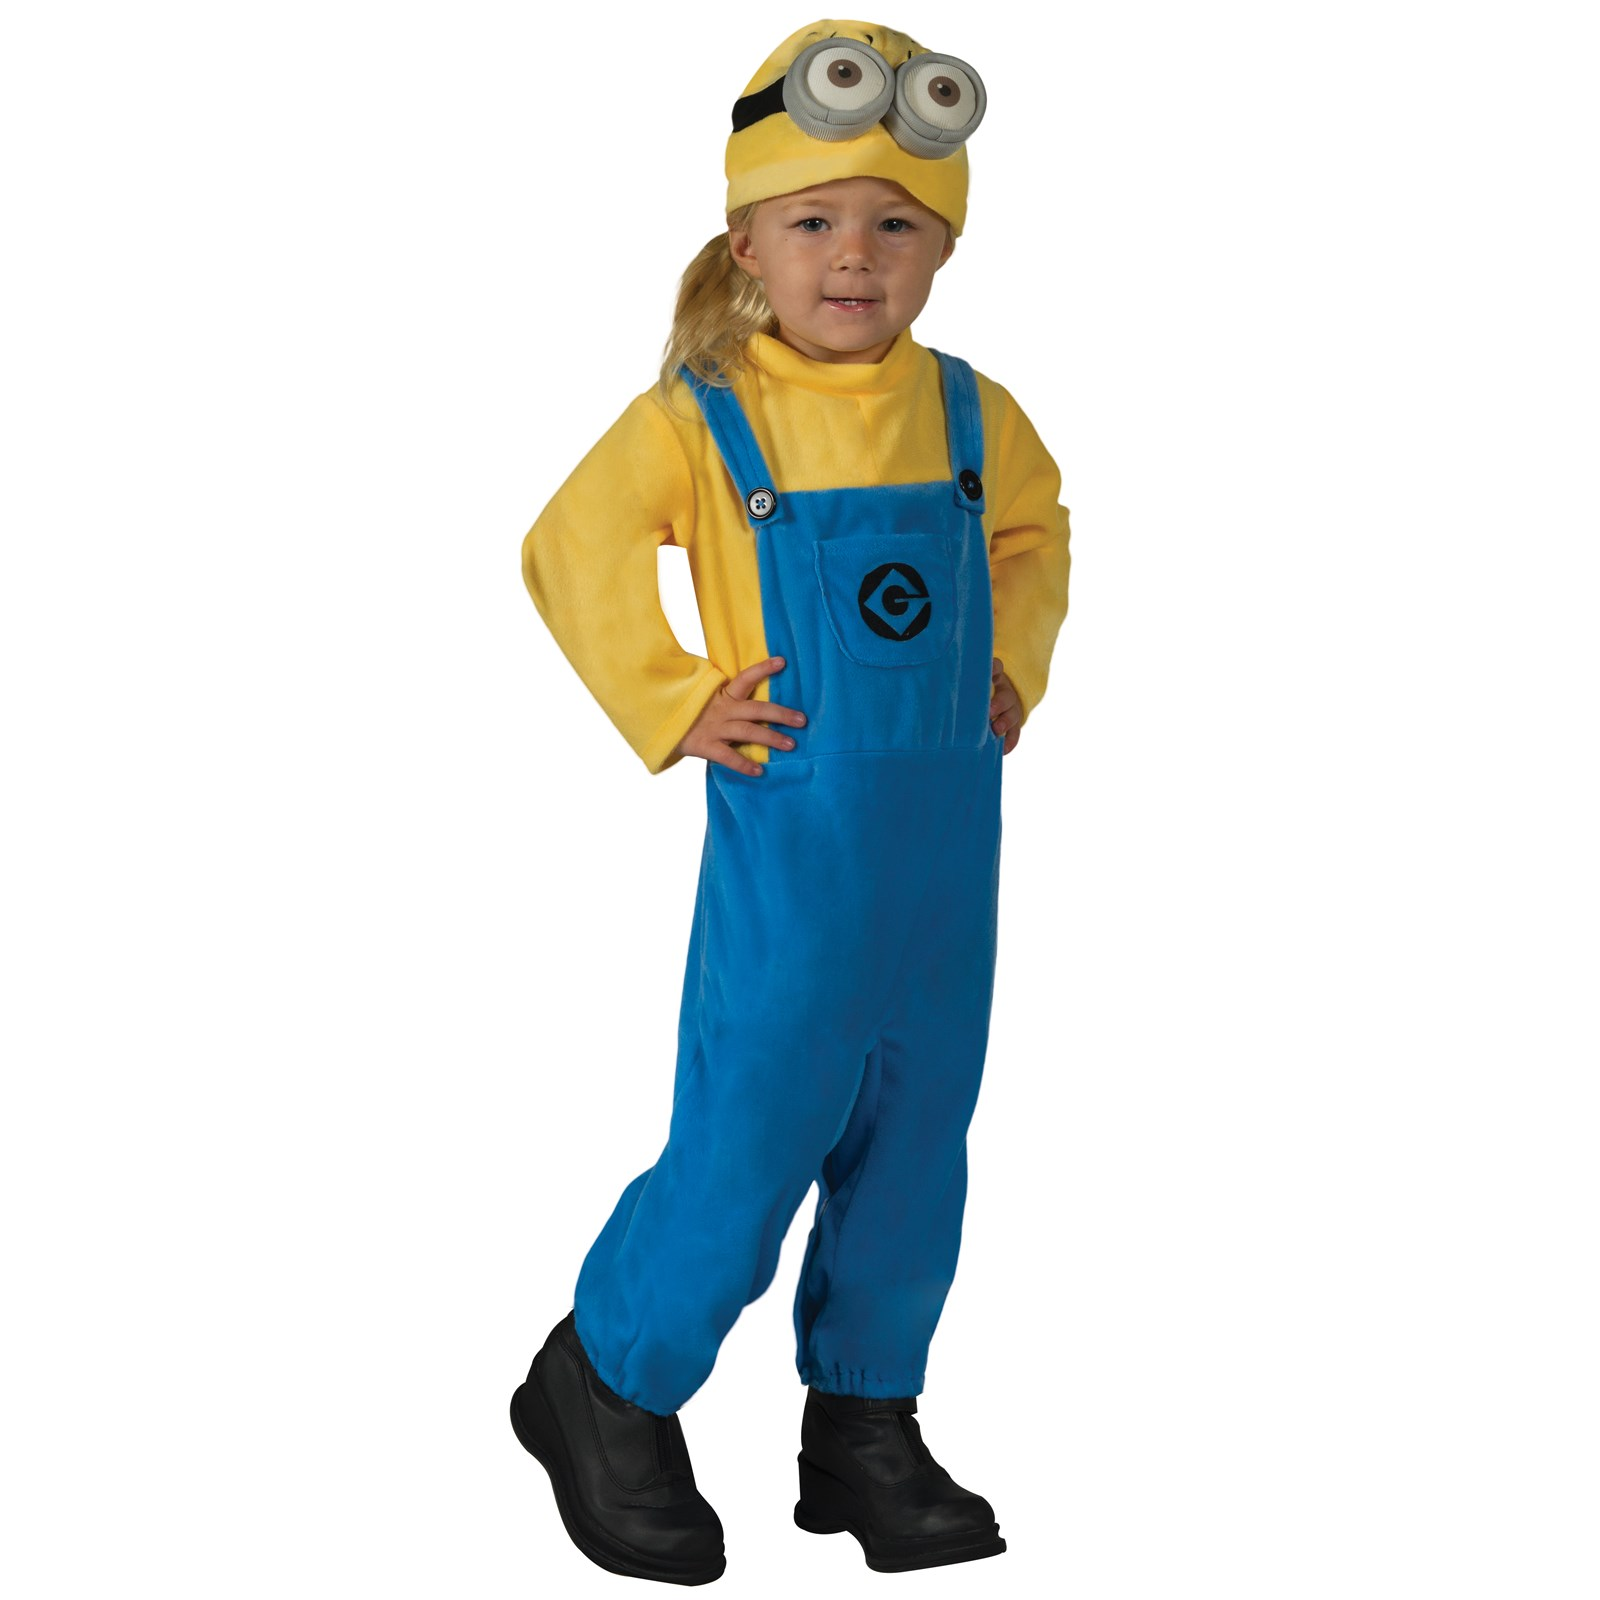 Minion Jerry Toddler Costume by Rubies